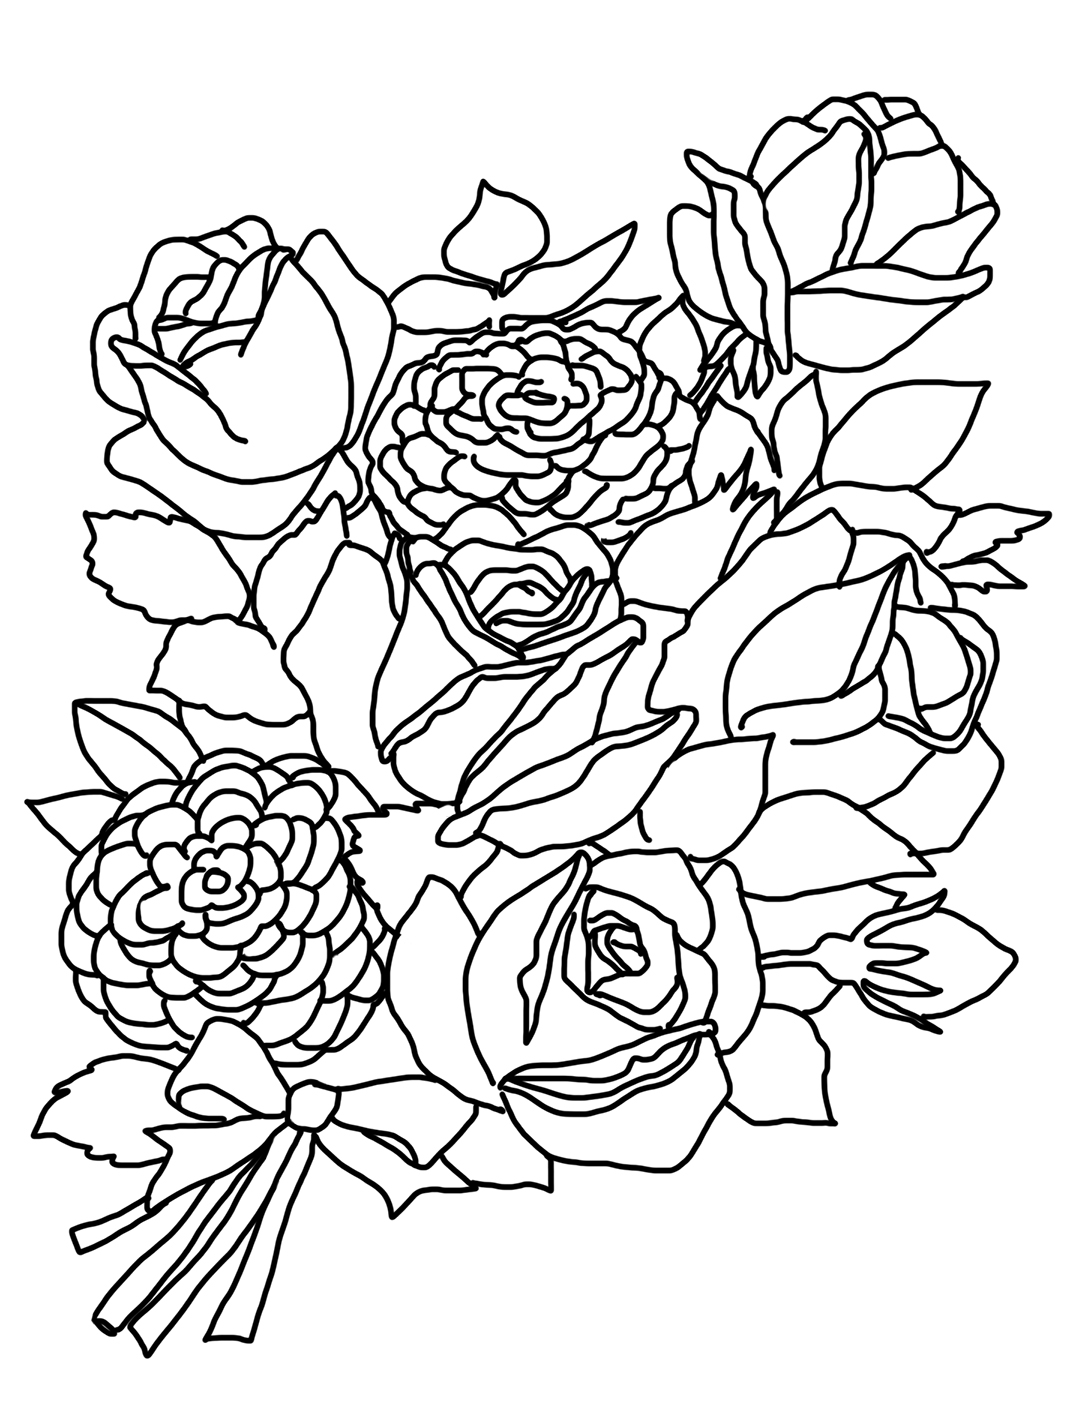 rose coloring page printable rose coloring pages for kids page coloring rose